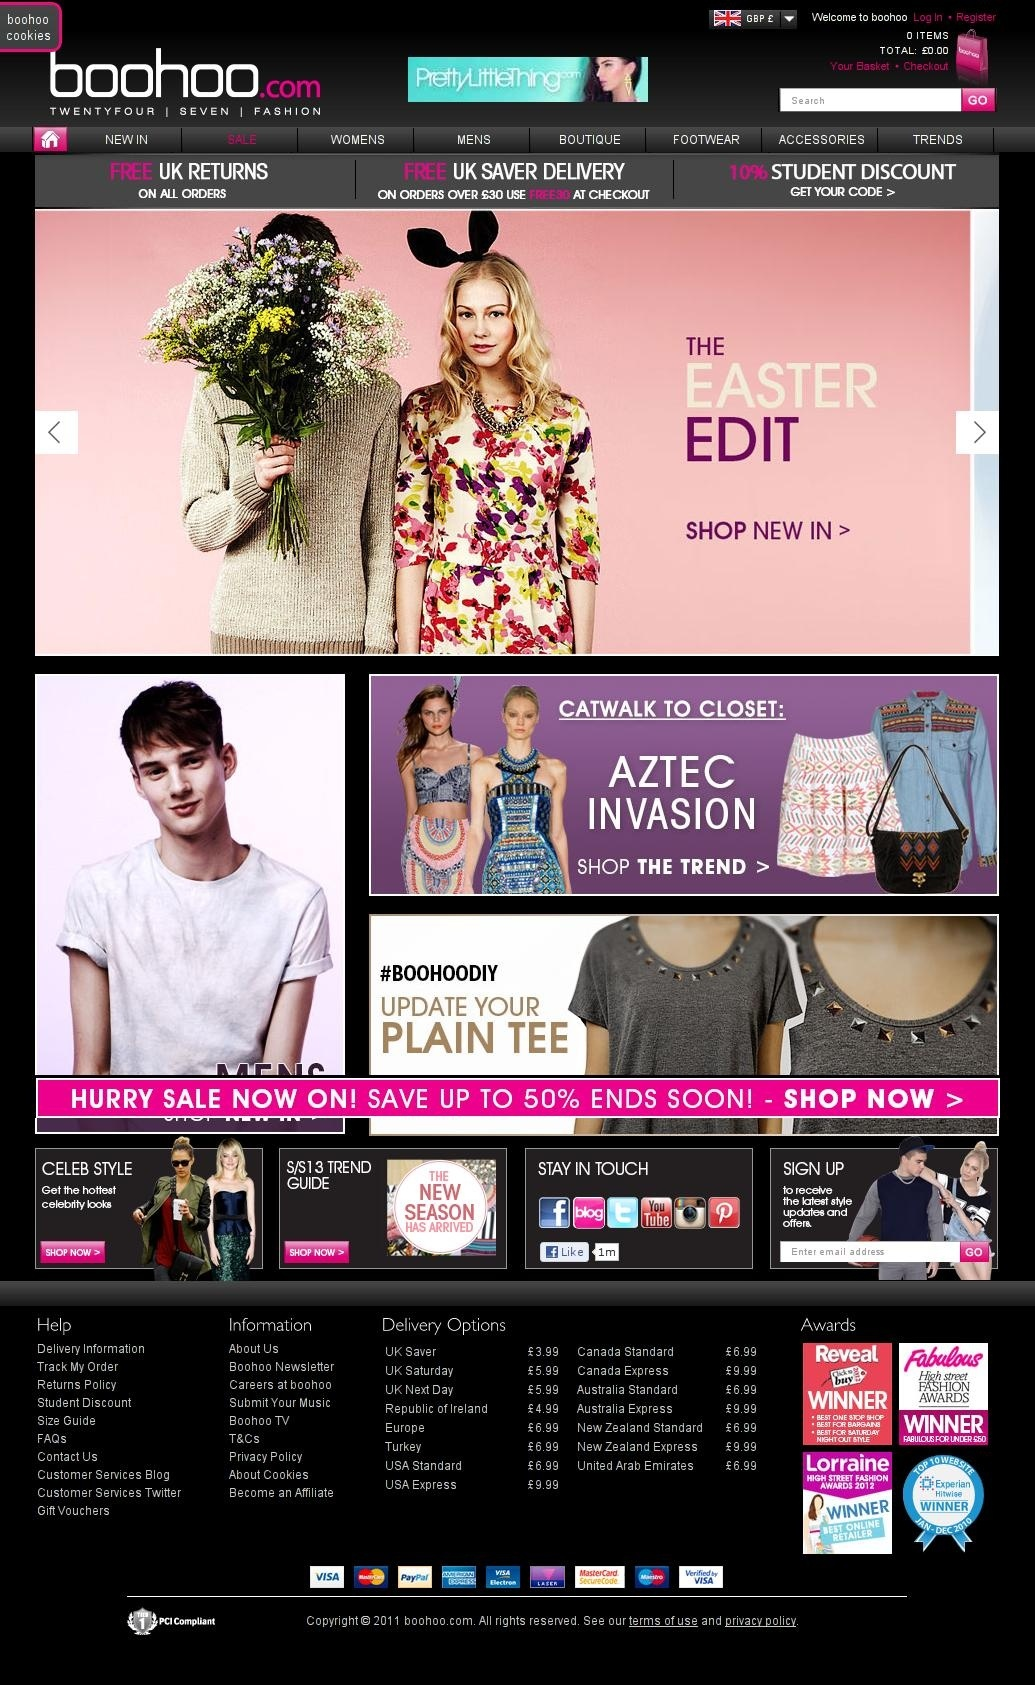 Boohoo homepage update 25th March